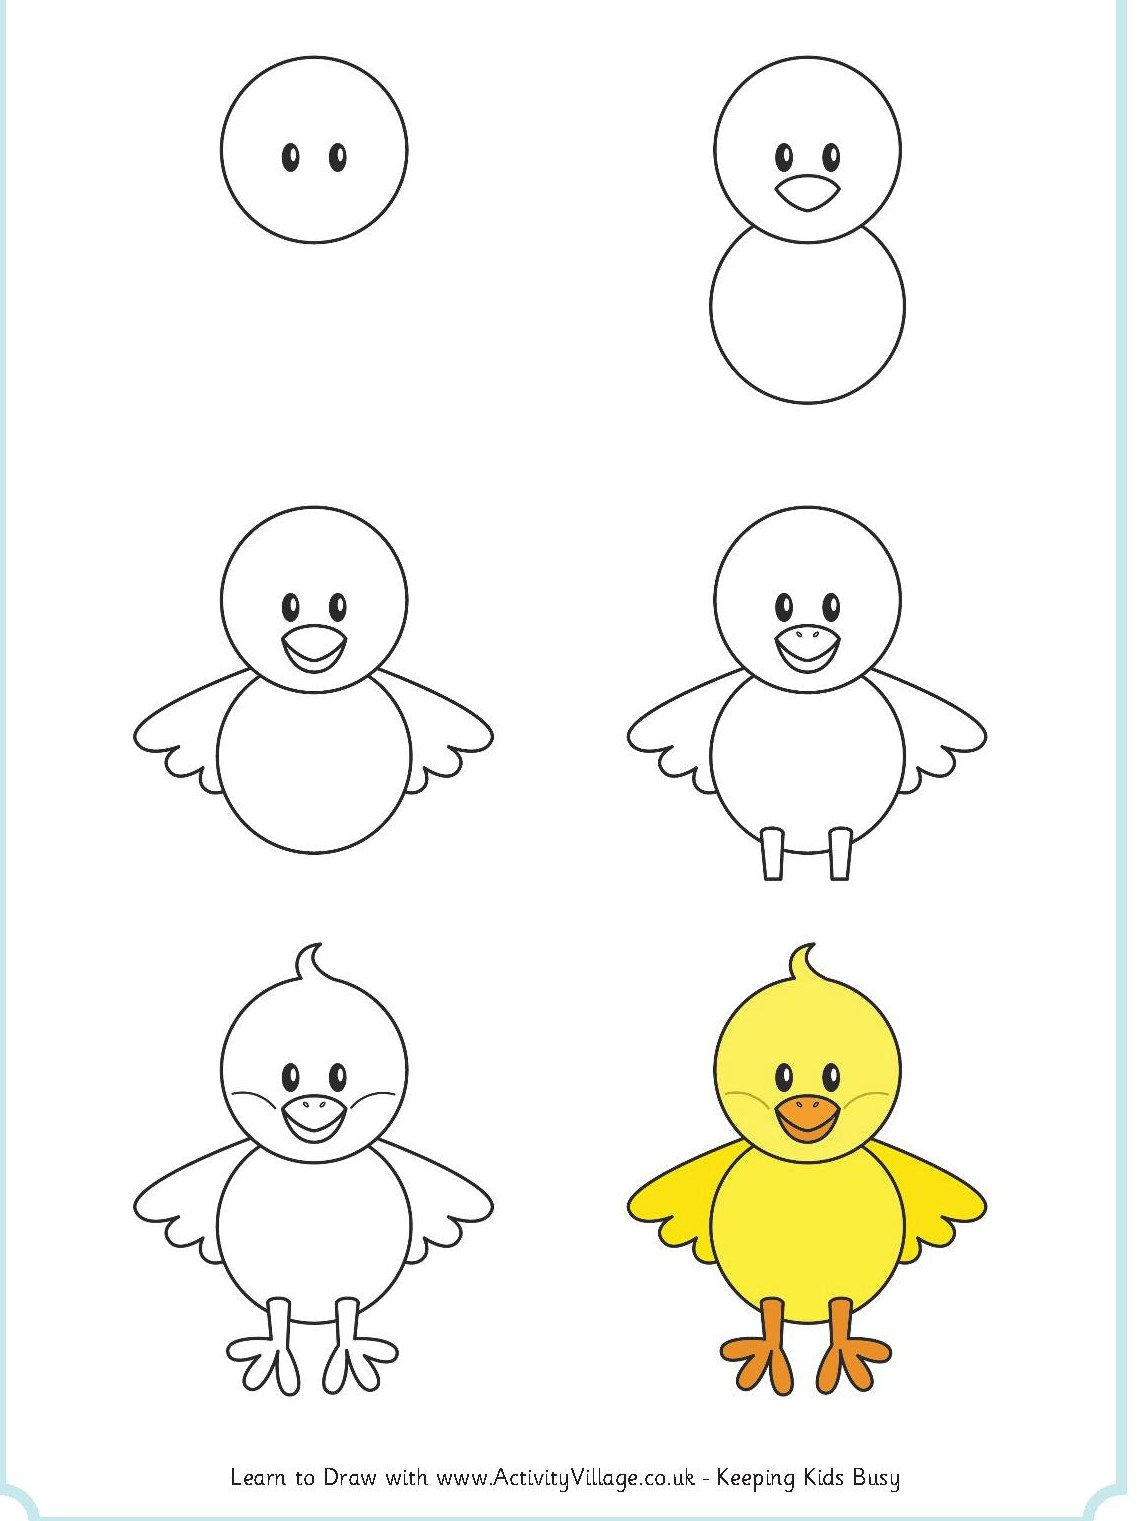 Superior dessiner un ours maternelle 1 learn to draw a - Ours a dessiner ...